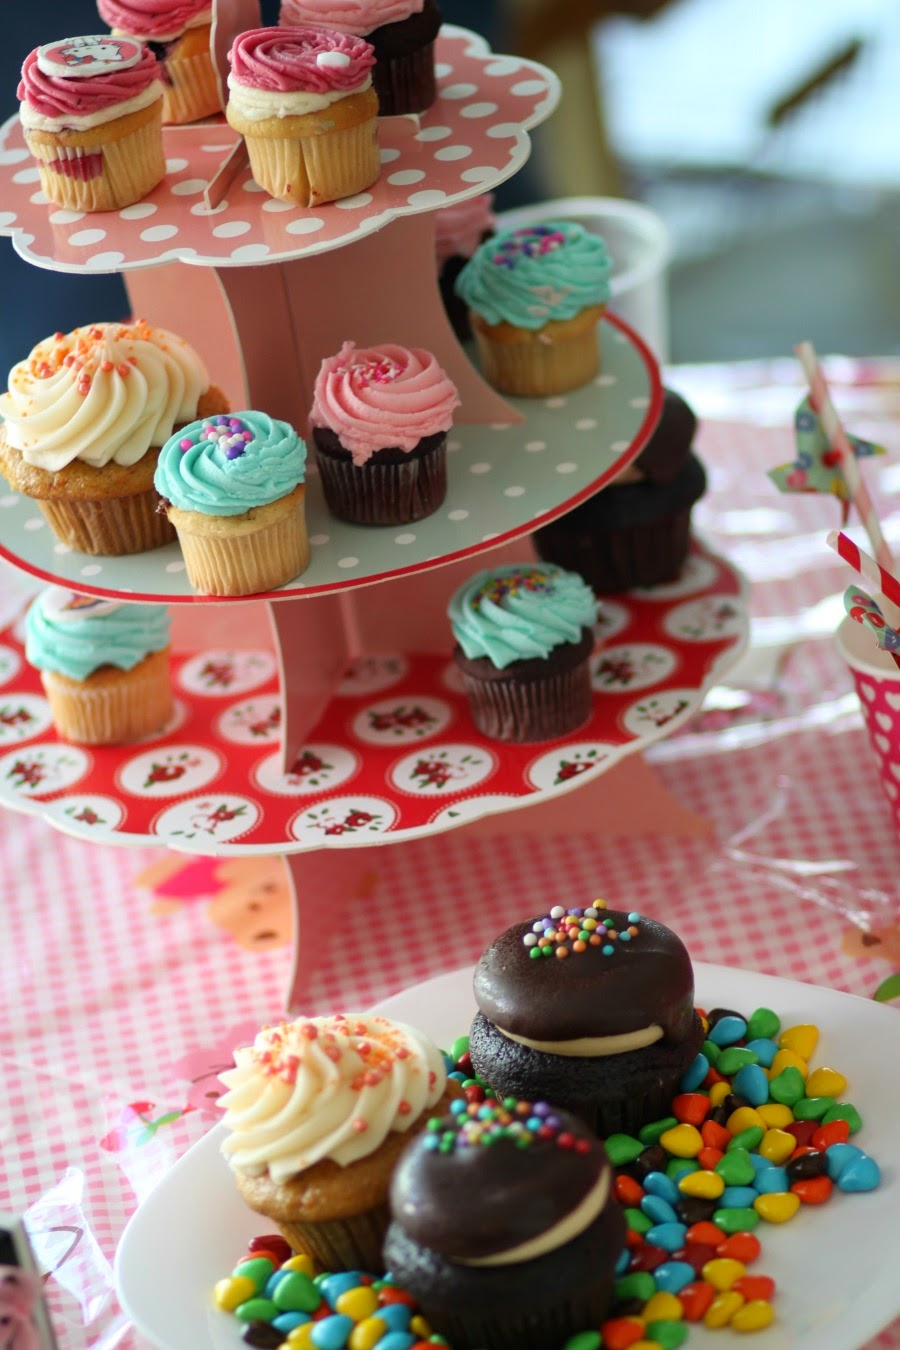 decoration, decor, girlbirthdayparty, cupcakes, sweets, celebration, happy, blog, fashionblog, ארגוןיוםהולדתלילדה, בלוג, דקורציה